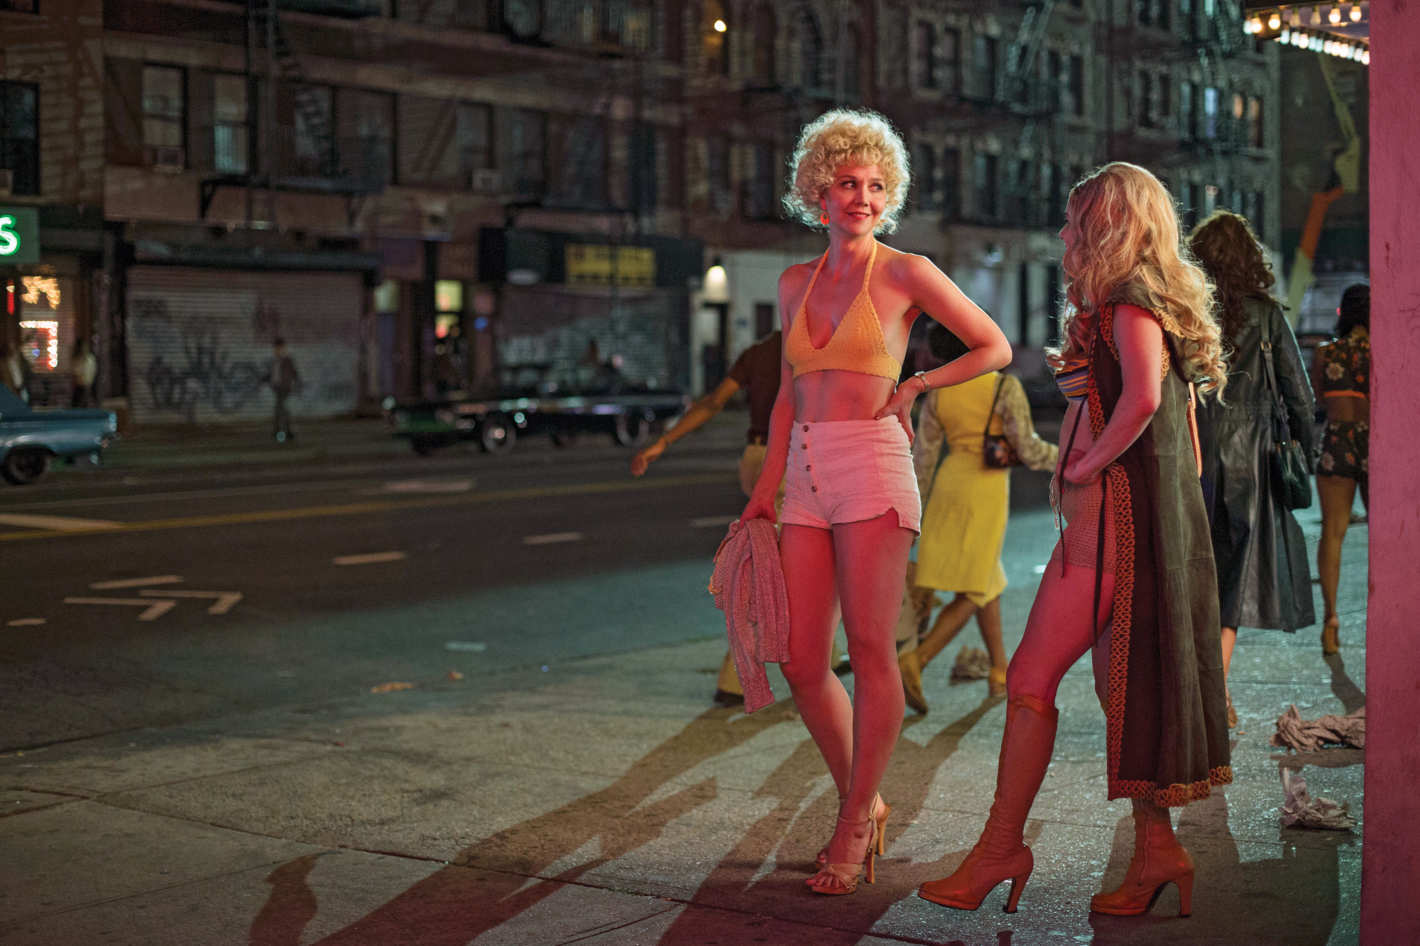 After Porn Ends 2017 Trailer the deuce season 2 trailer, release date, cast, news, and